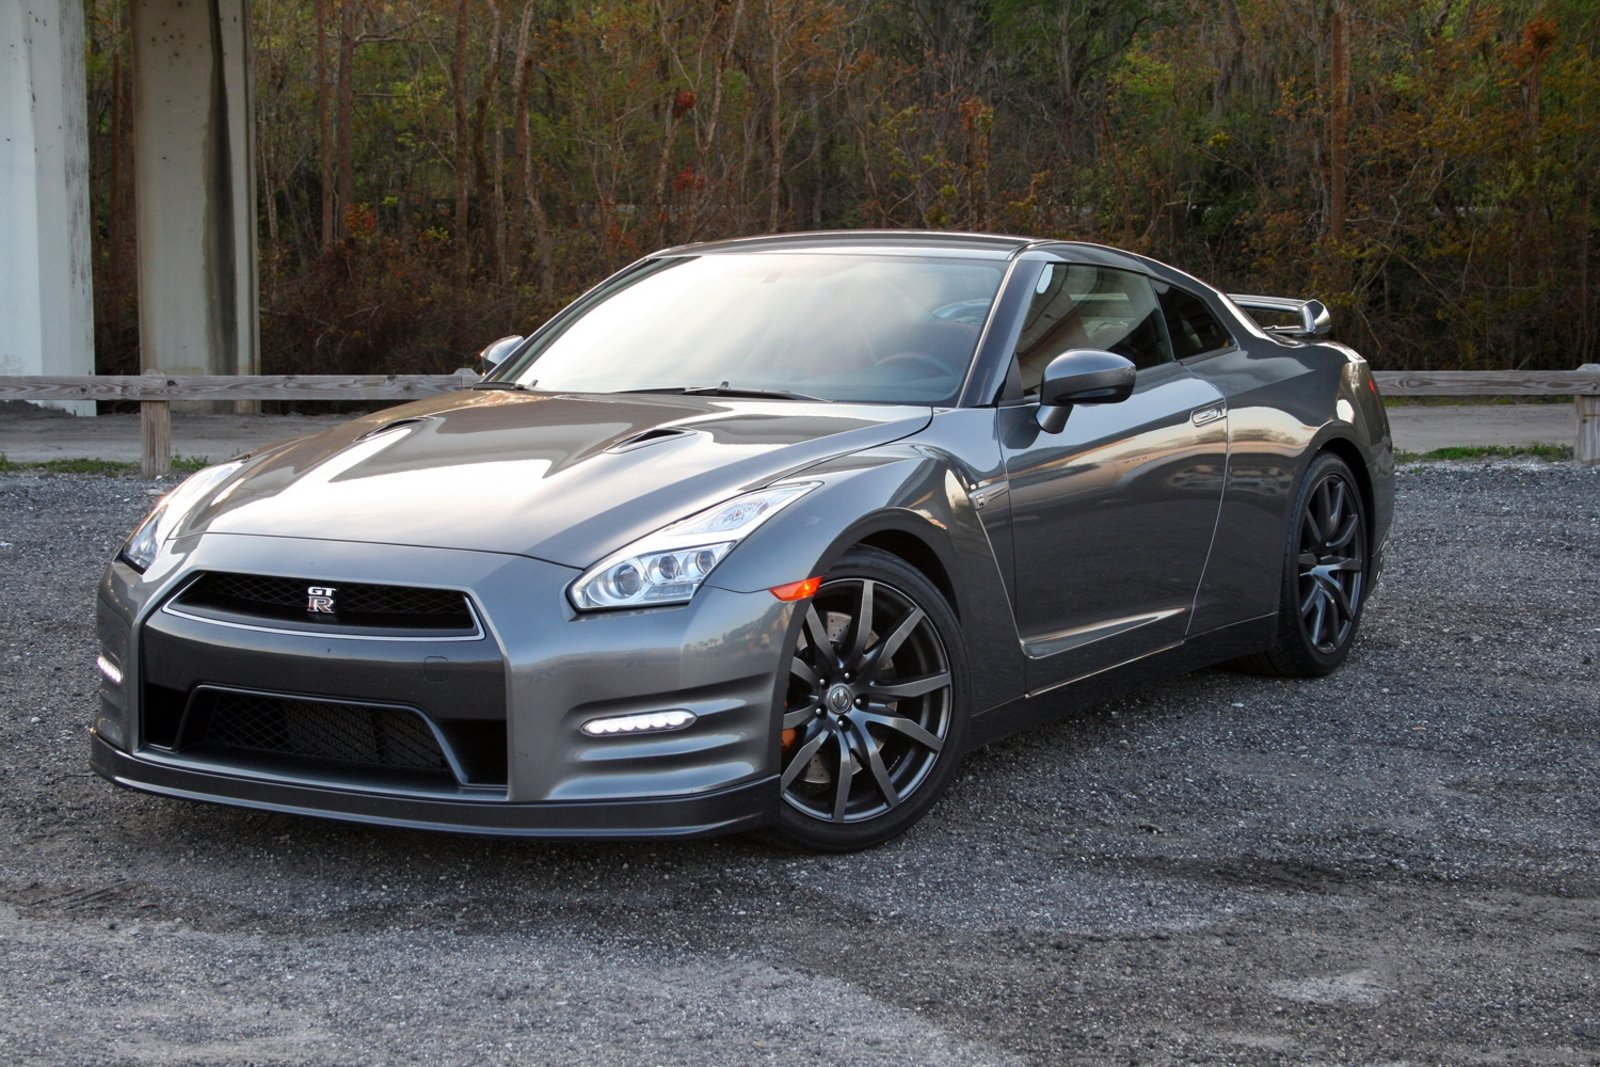 2015 nissan gt r driven review top speed. Black Bedroom Furniture Sets. Home Design Ideas